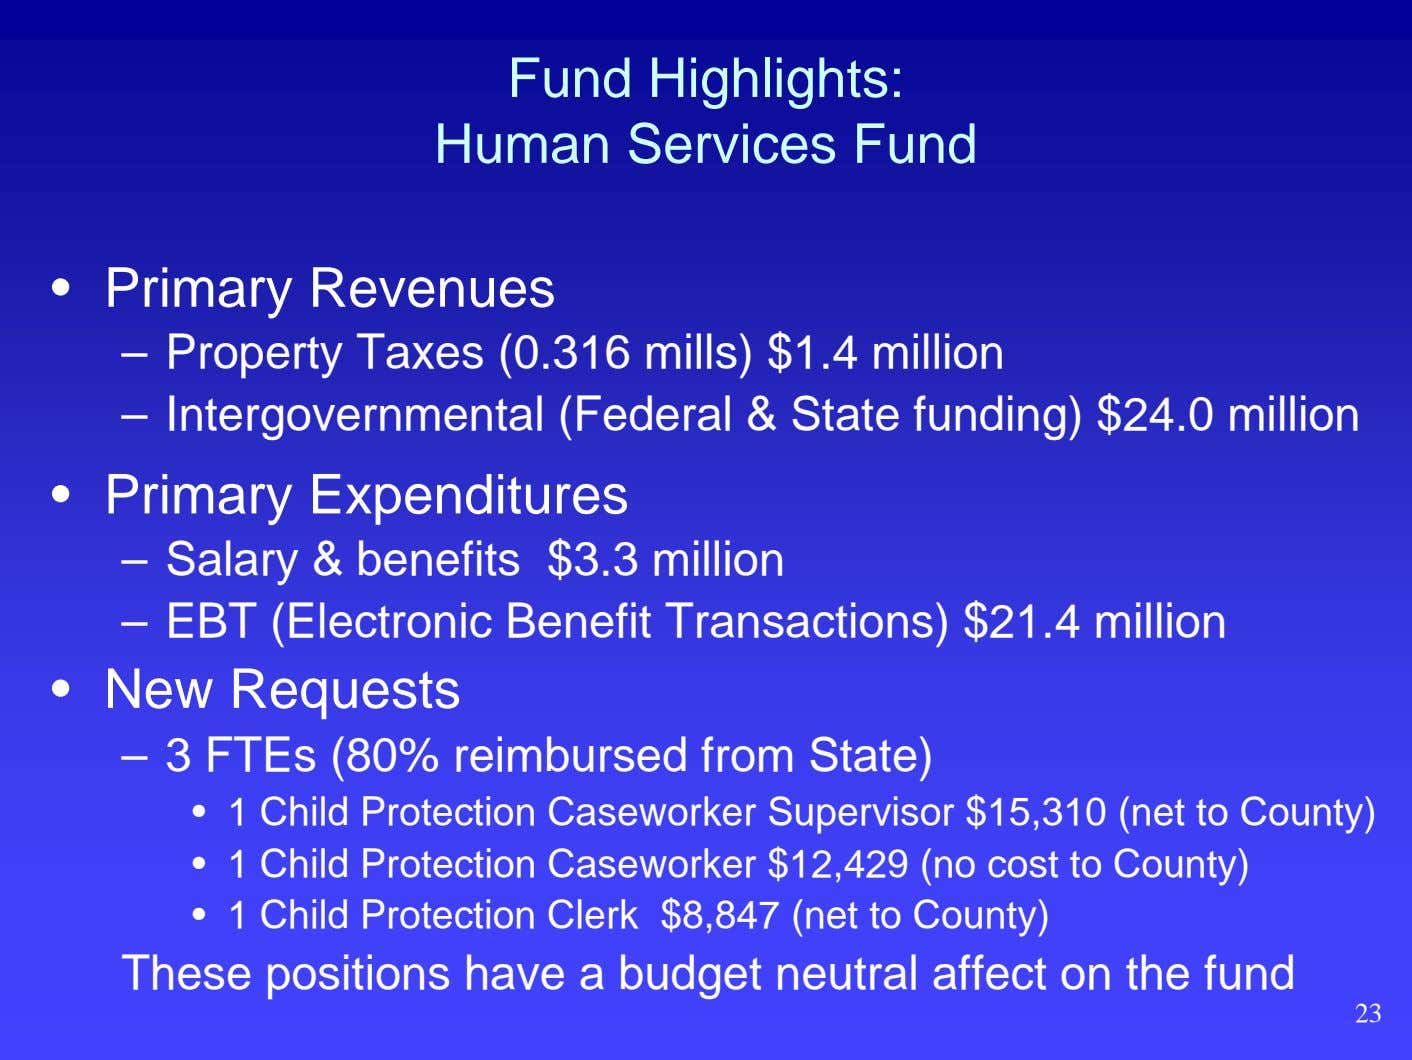 Fund Highlights: Human Services Fund • Primary Revenues – Property Taxes (0.316 mills) $1.4 million